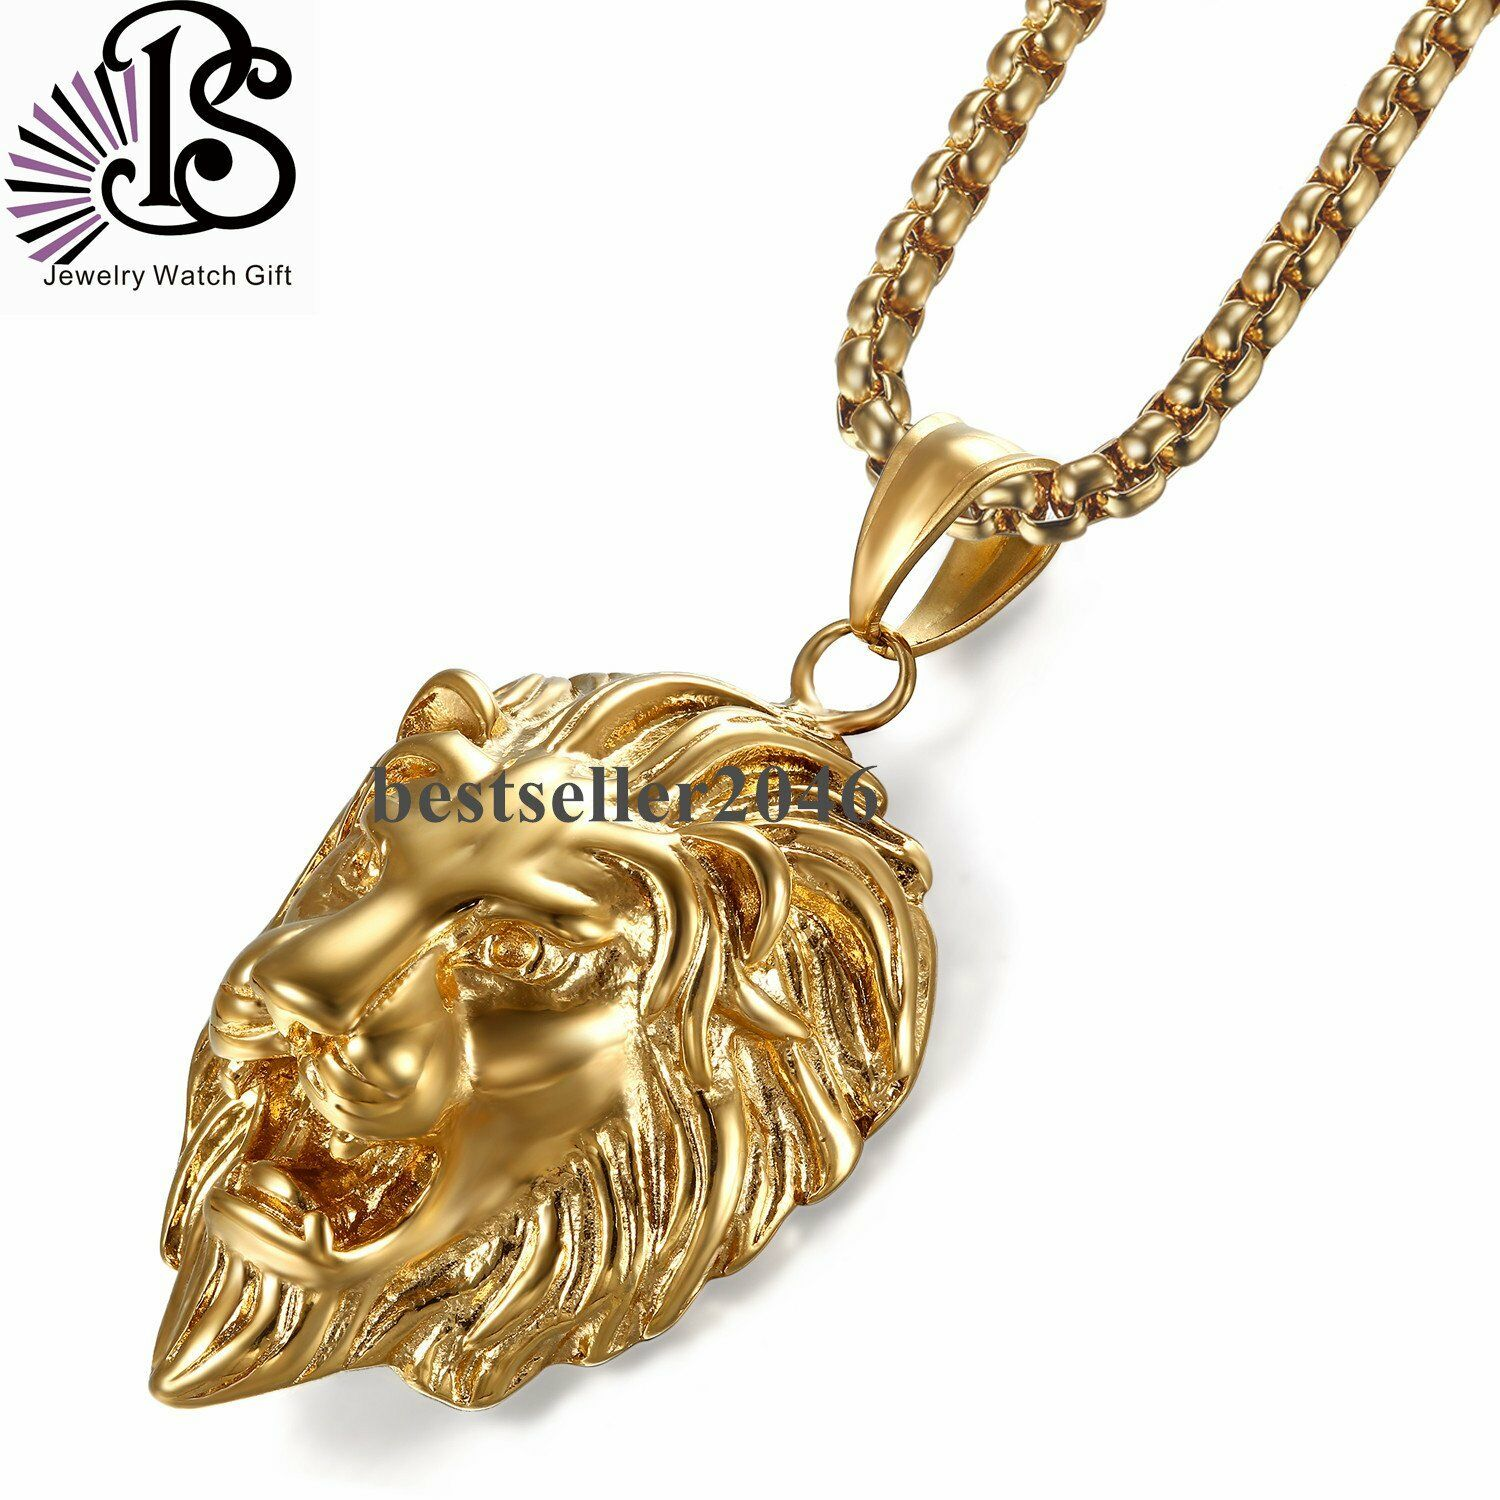 jewels hammerman lion christies necklace s christie nyr brothers pendant online